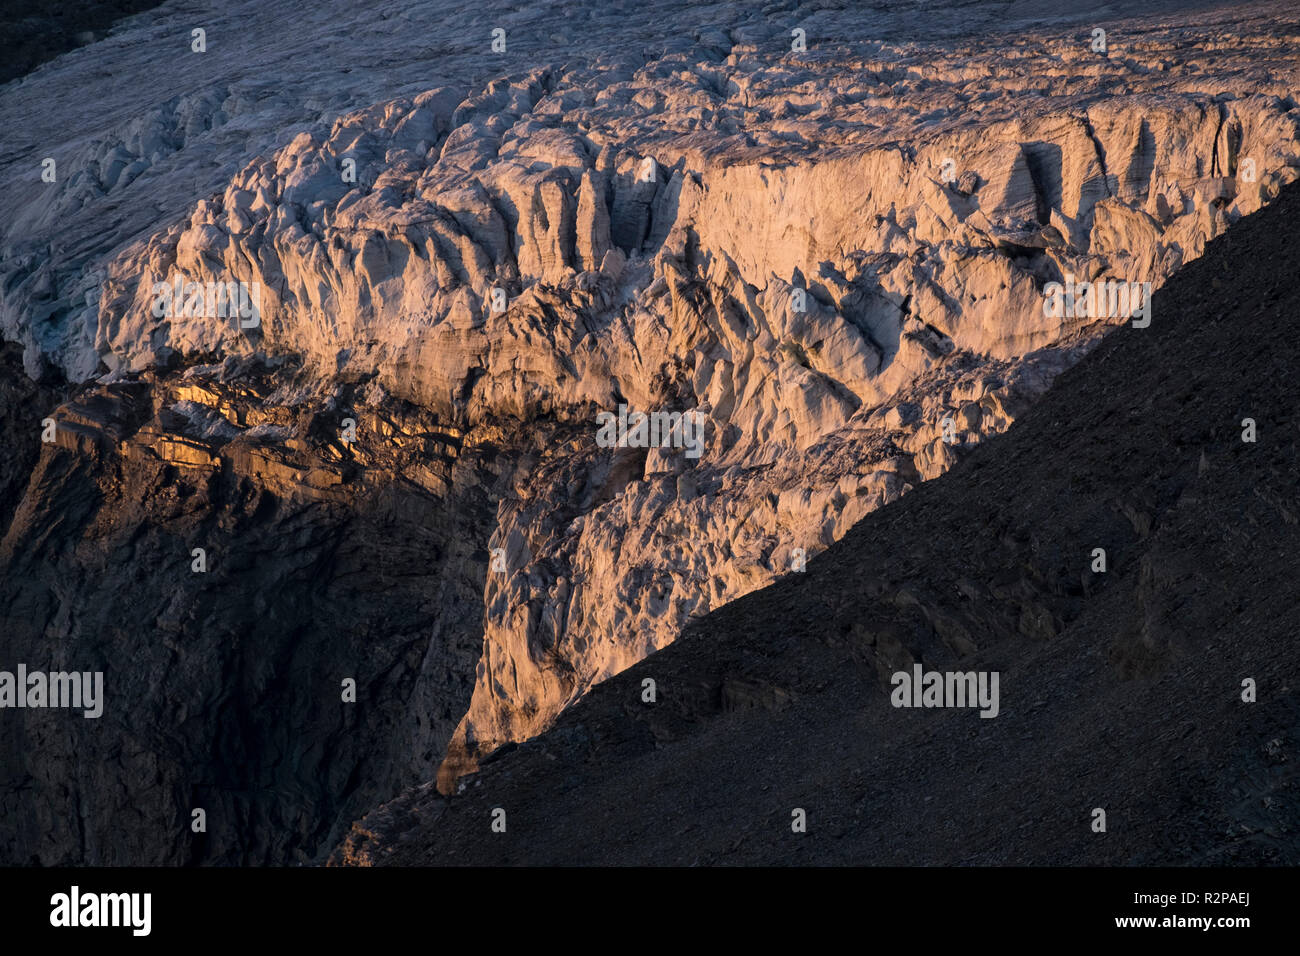 Icefall in the Teischnitzkees Glacier, evening light, High Tauern, East Tyrol, Austria - Stock Image